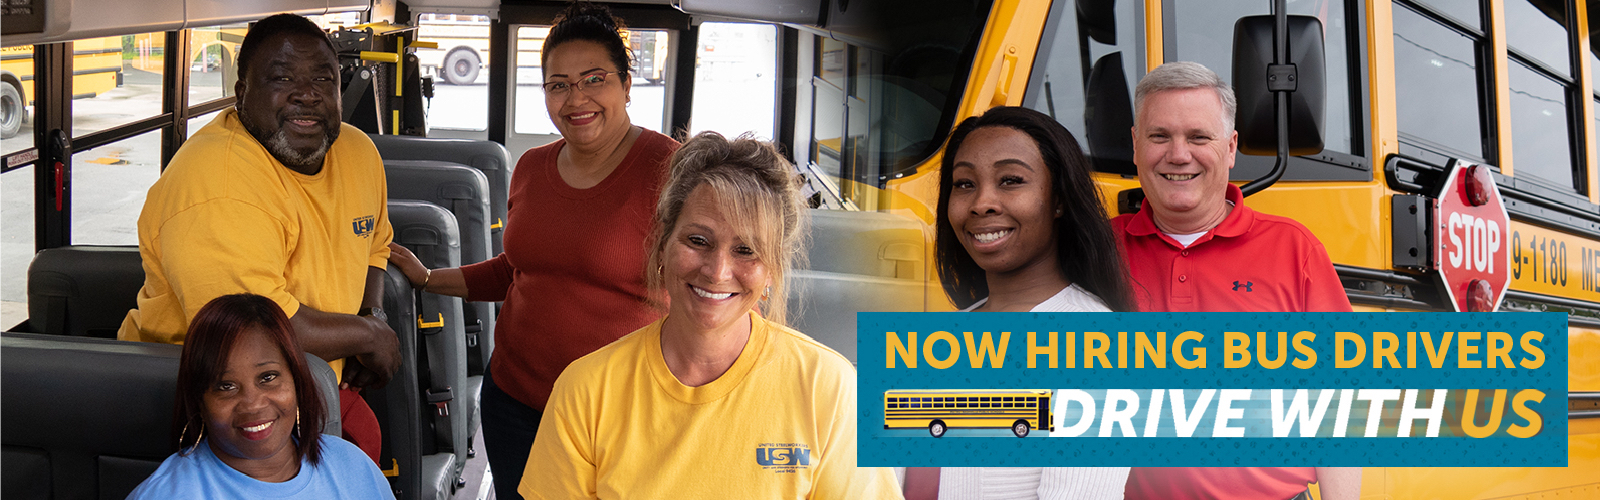 Join our team of dedicated bus drivers